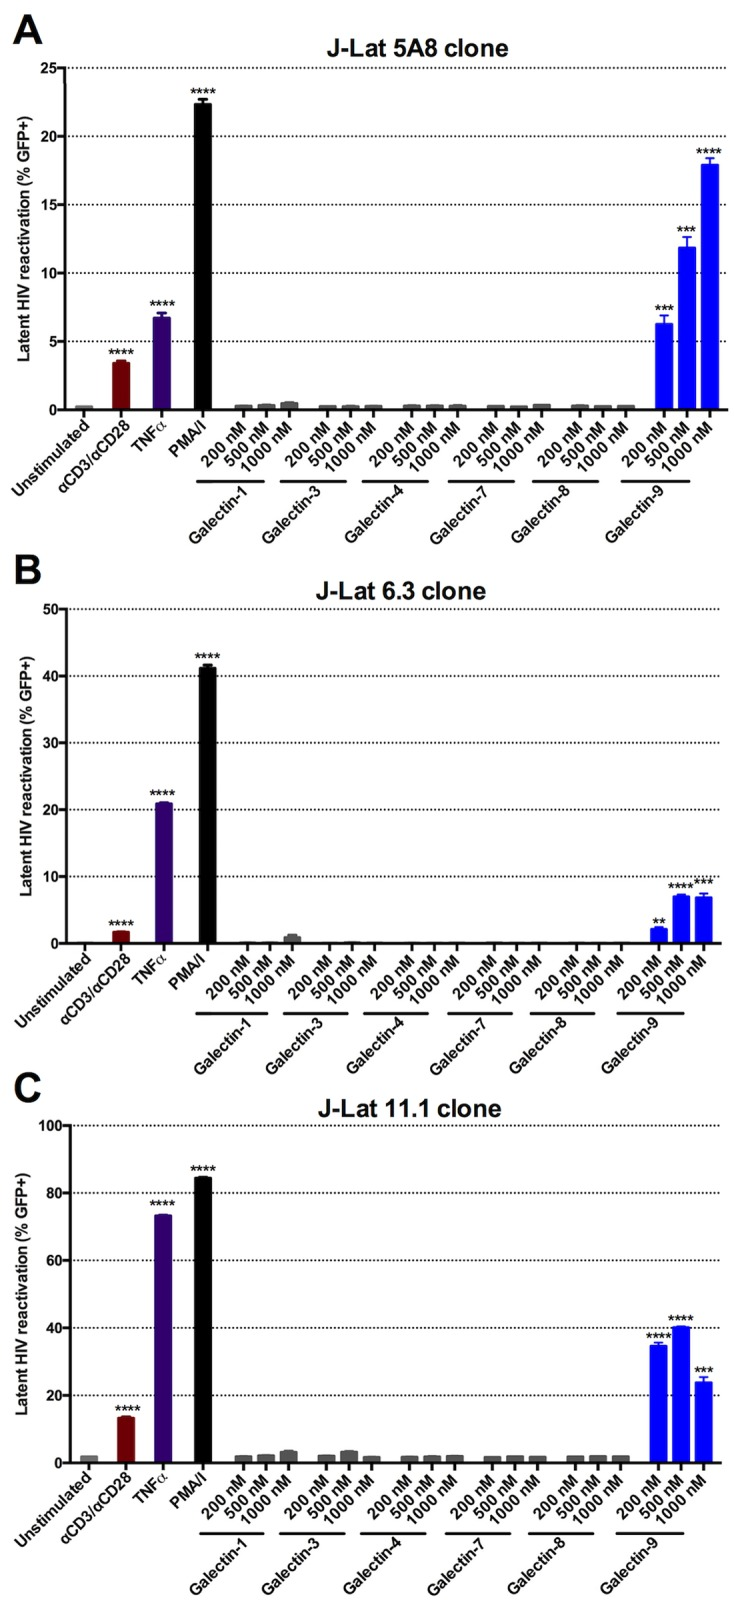 rGal-9 is a potent mediator of HIV transcription in vitro . in vitro HIV reactivation in the J-Lat latency model (A) 5A8 clone, (B) 6.3 clone, and (C) 11.1 clone by varying doses of rGal-9 and other galectins (-1, -3, -4, -7, -8, and -9) after 24 hours of stimulation. αCD3 /αCD28 antibodies conjugated to beads, PMA/ionomycin (16 nM/500 nM), and TNFα (10 ng/ml) were used as positive controls. J-Lat cells were analyzed by flow cytometry to assess HIV-encoded GFP expression. Mean ± SEM is displayed, and statistical comparisons were performed using two-tailed unpaired t tests. * = p